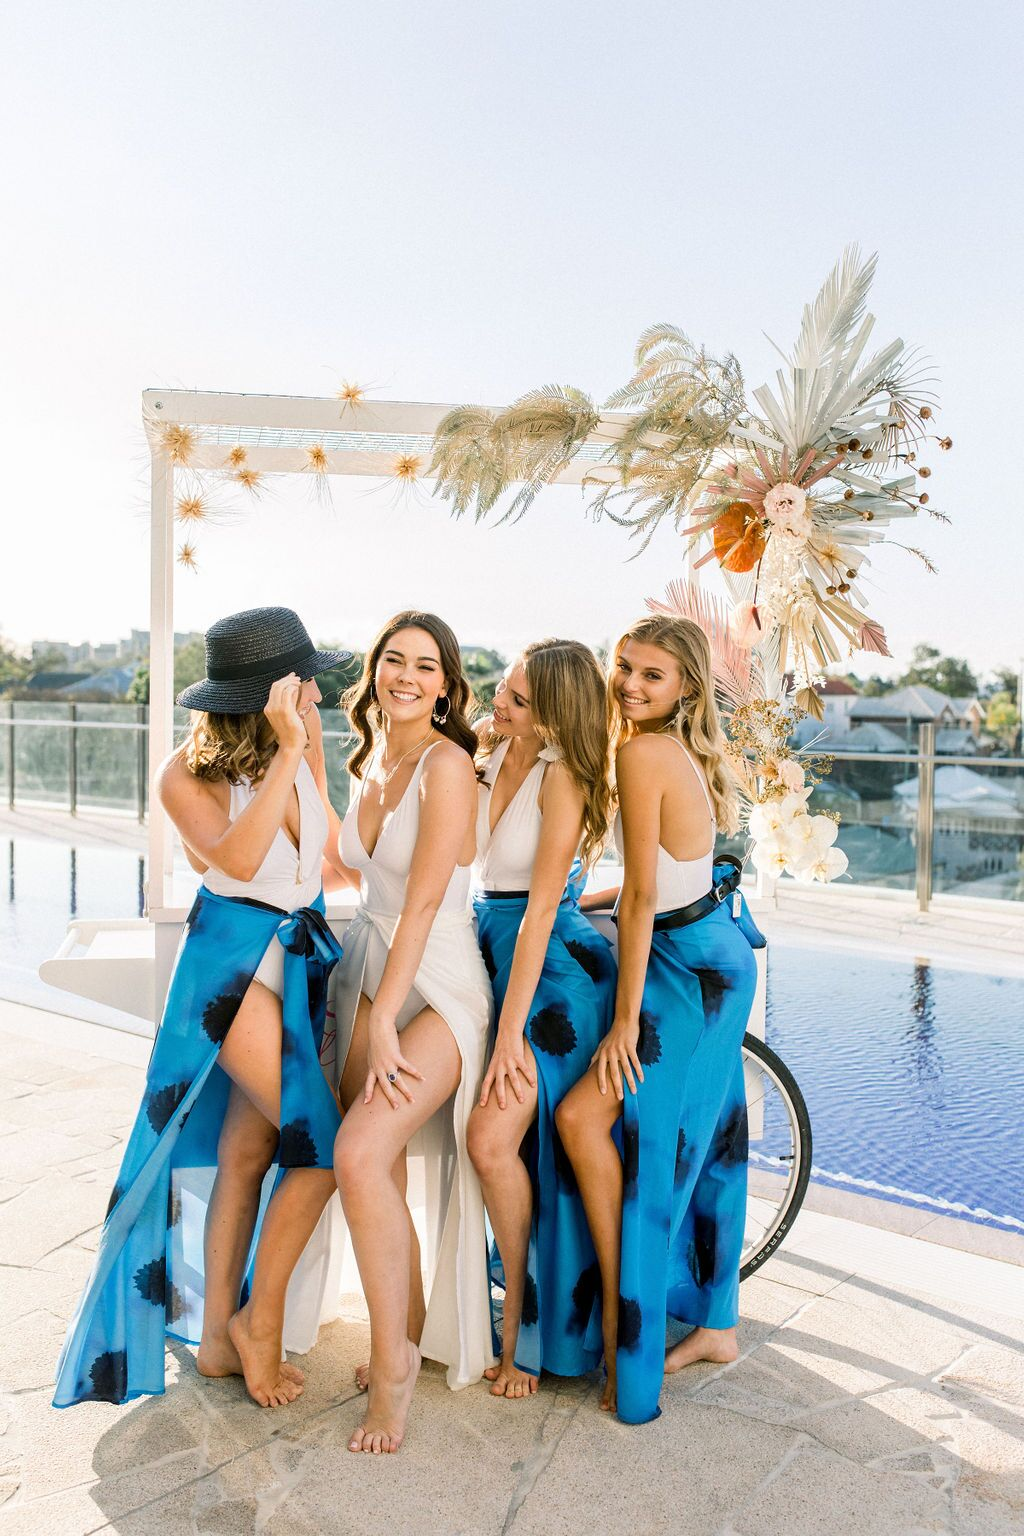 styled shoot white+white weddings and events get robed modern pink blue and white cart fun smiling